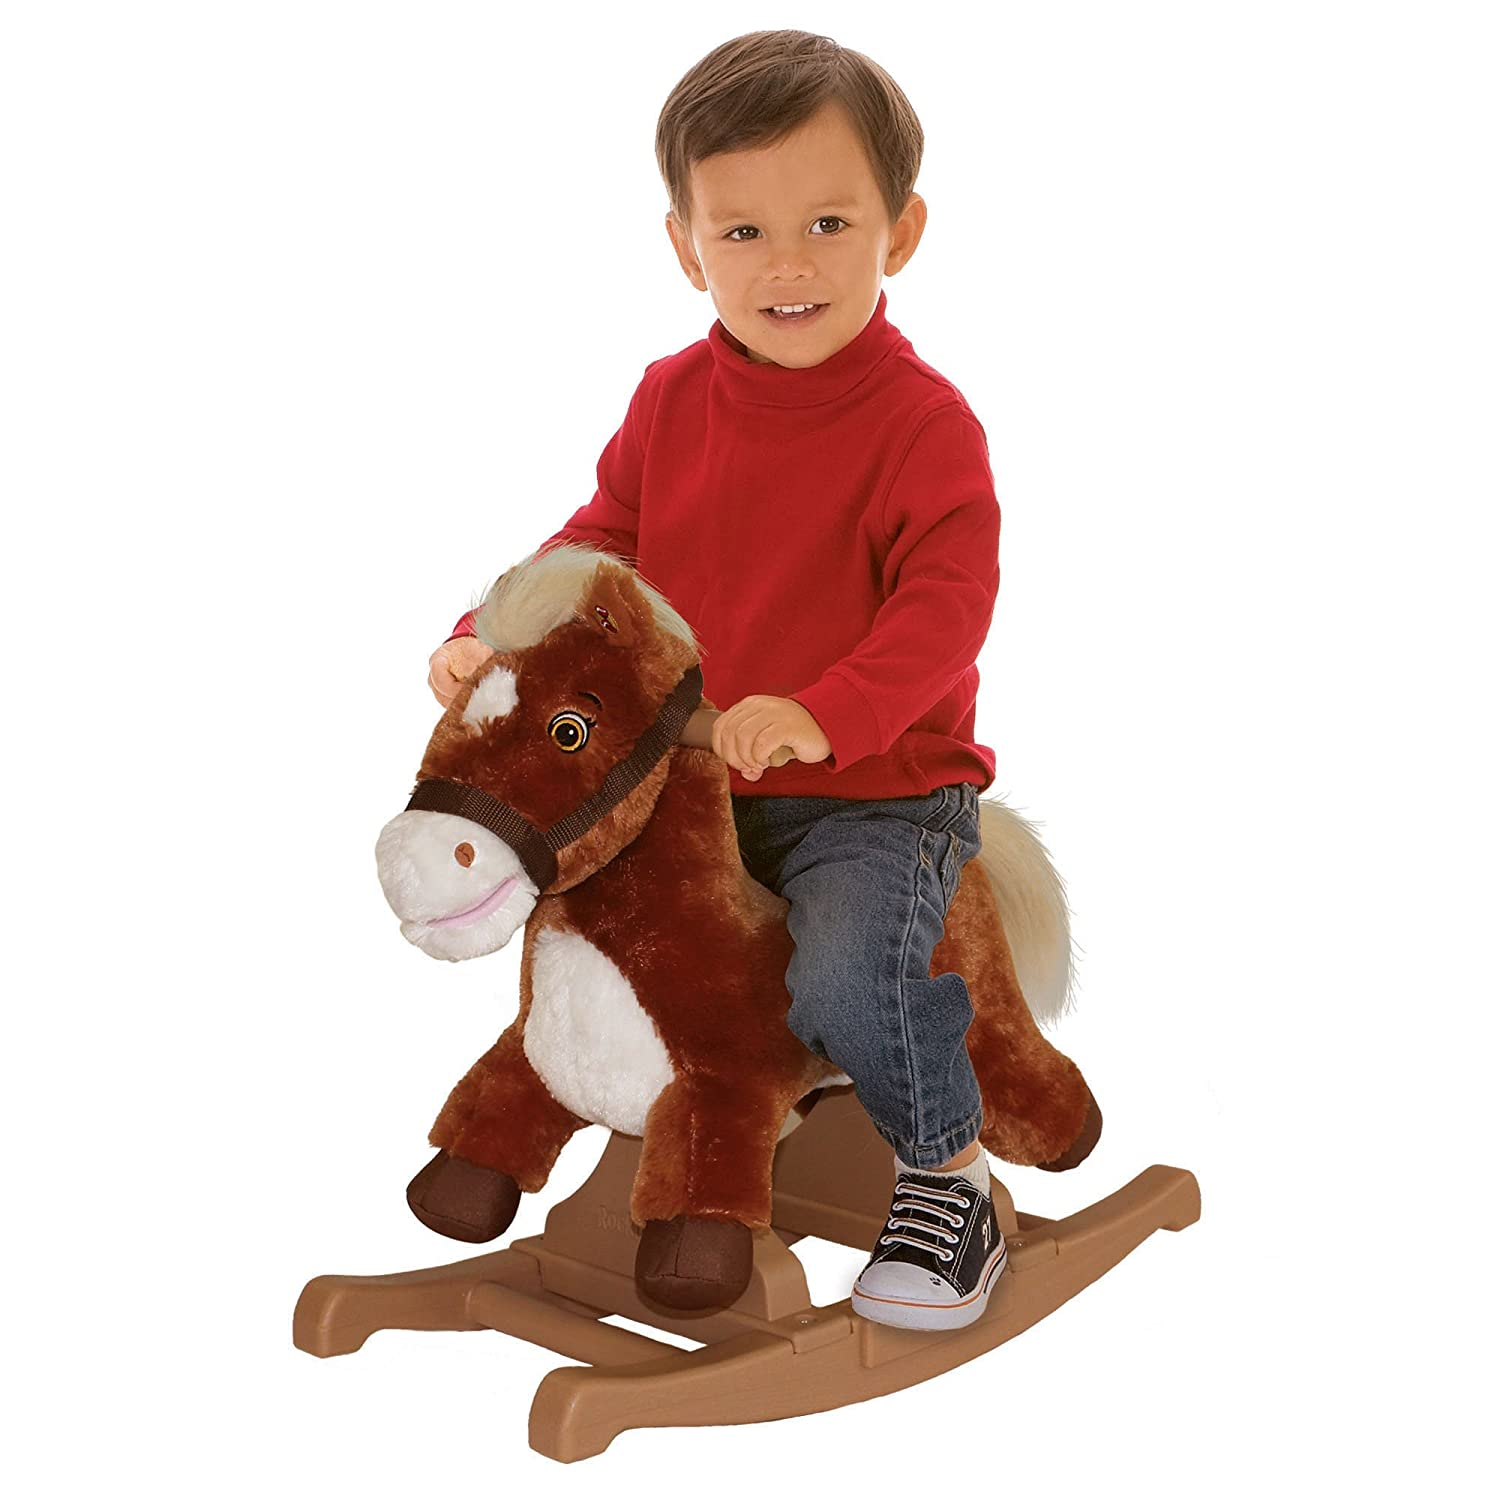 amazoncom rockin' rider brown rocking pony toys  games -